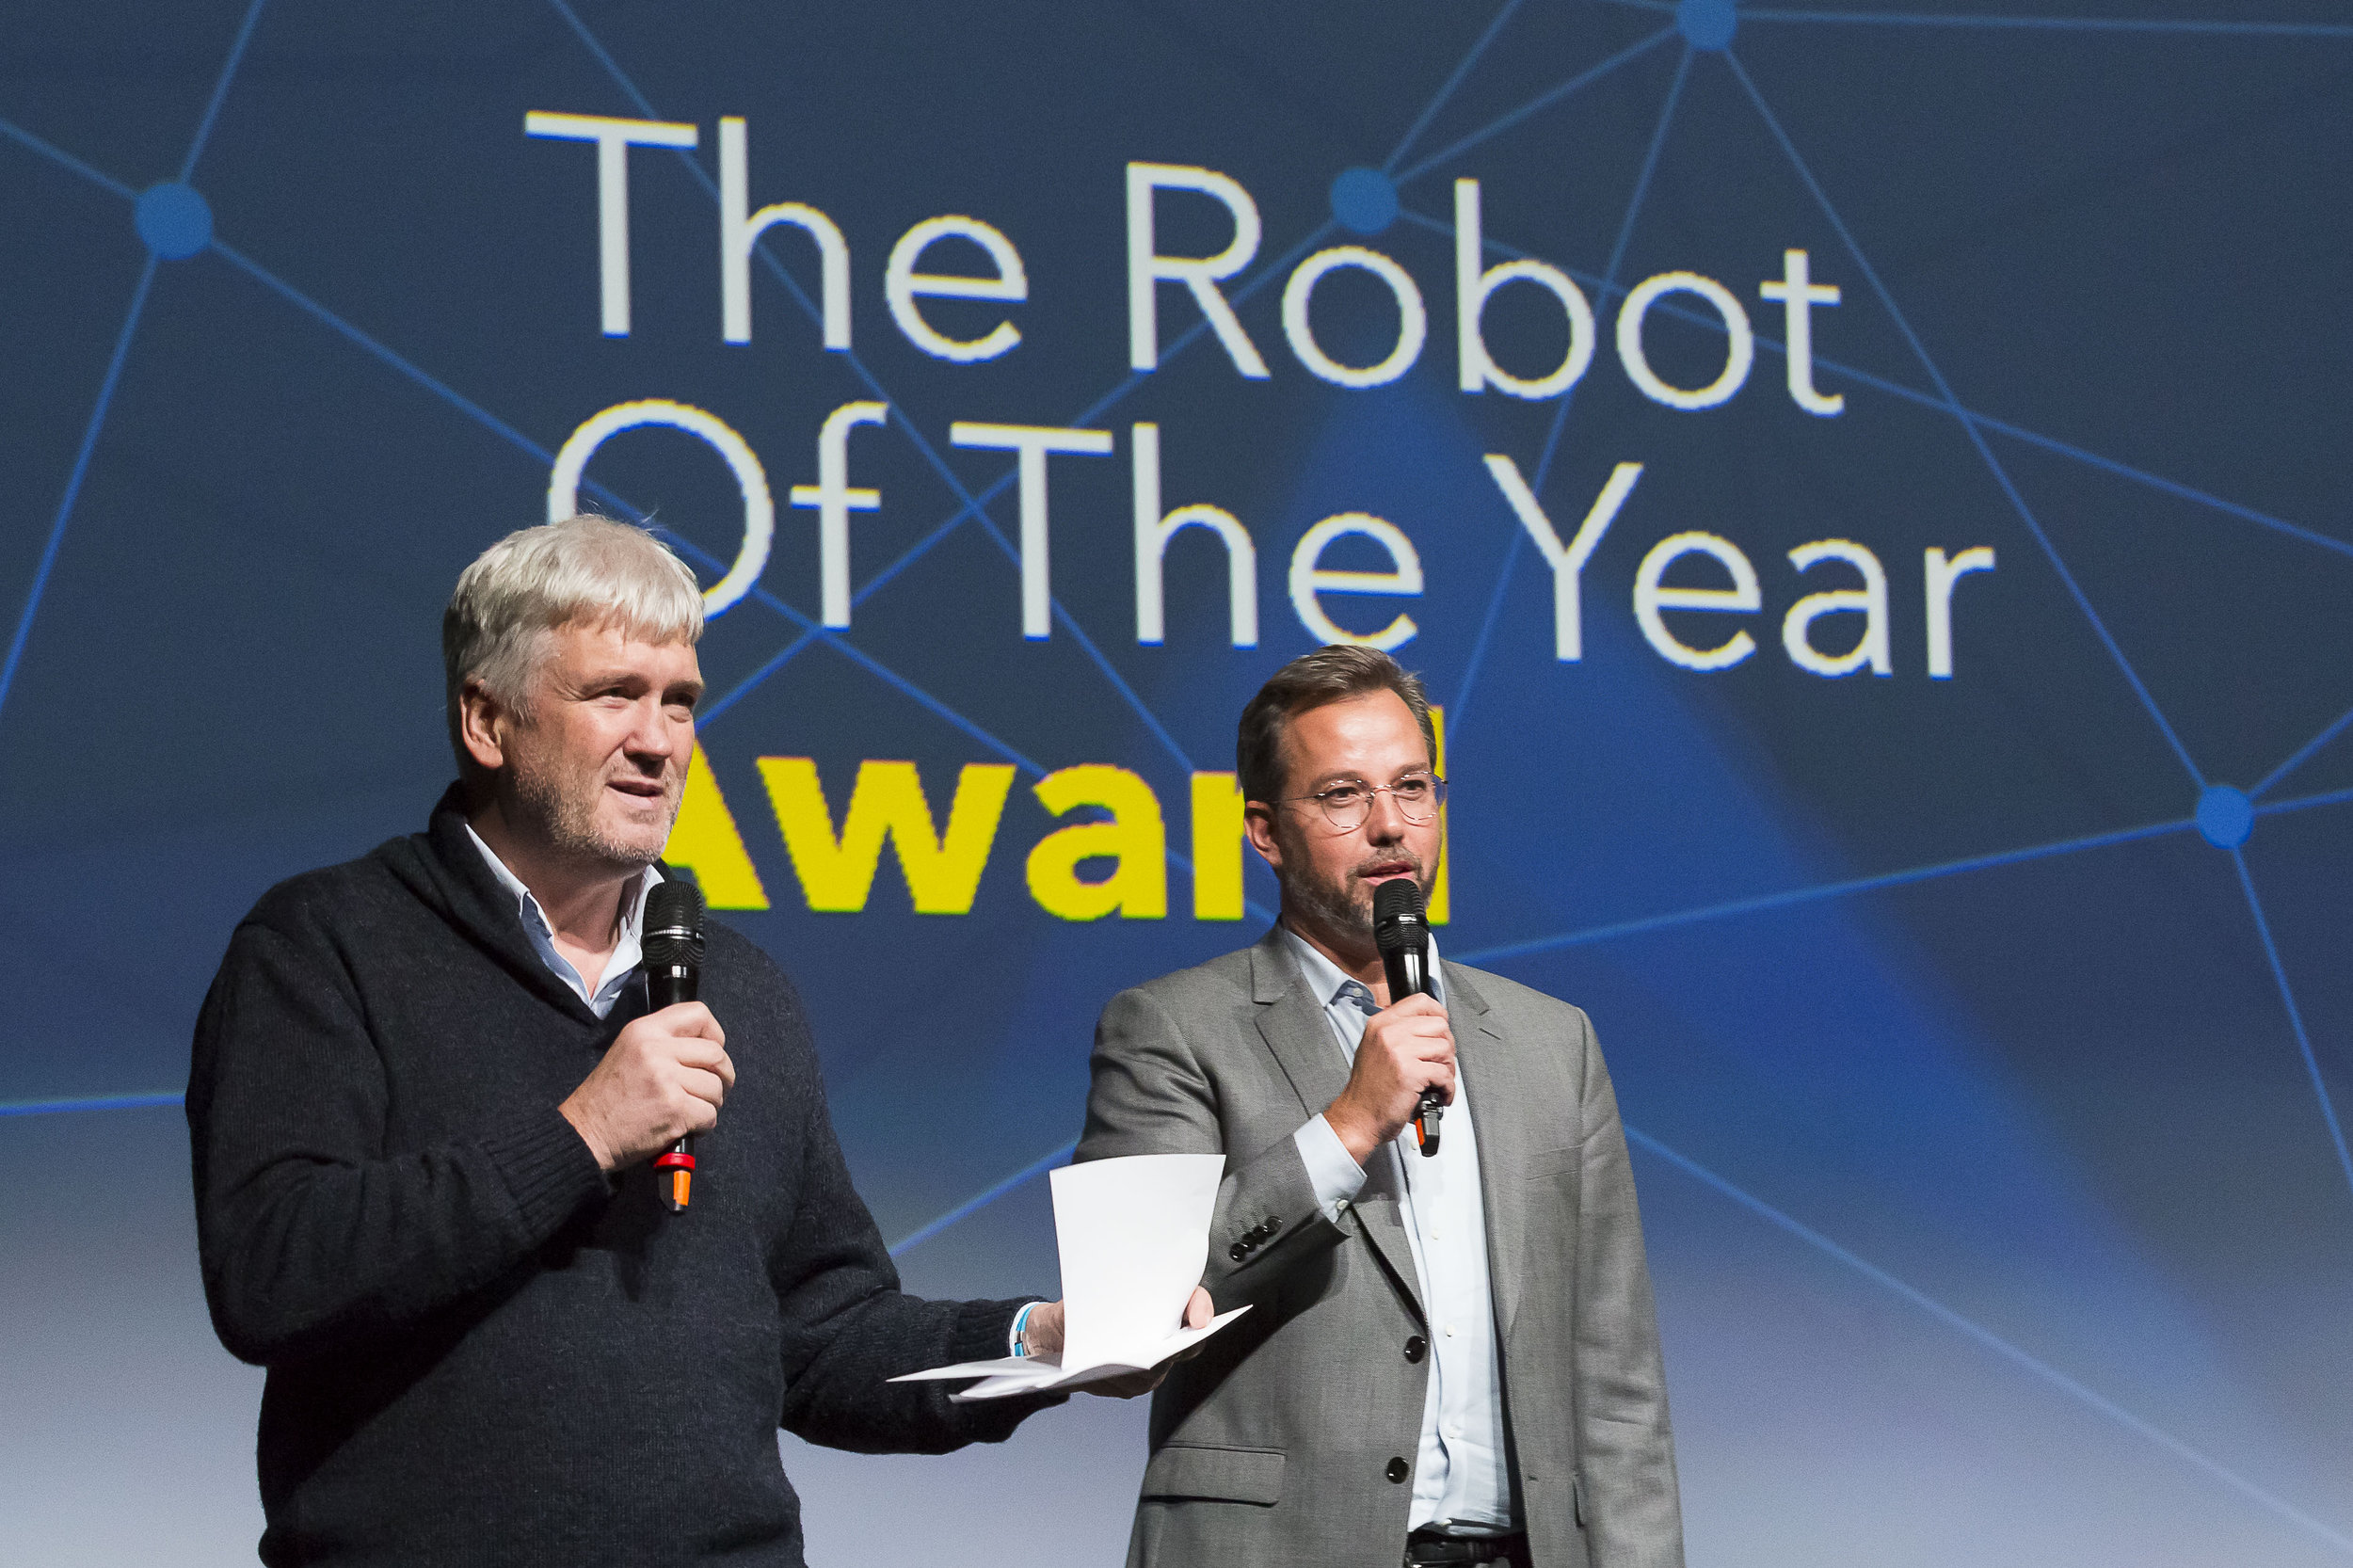 Awards Ceremony  BrunoMaisonnier- Founder of AnotherBrain & mentor of The Robot Of The Year, PhilippeNacson -Founder The Robot Of The Year & founding partner Ai.VEN